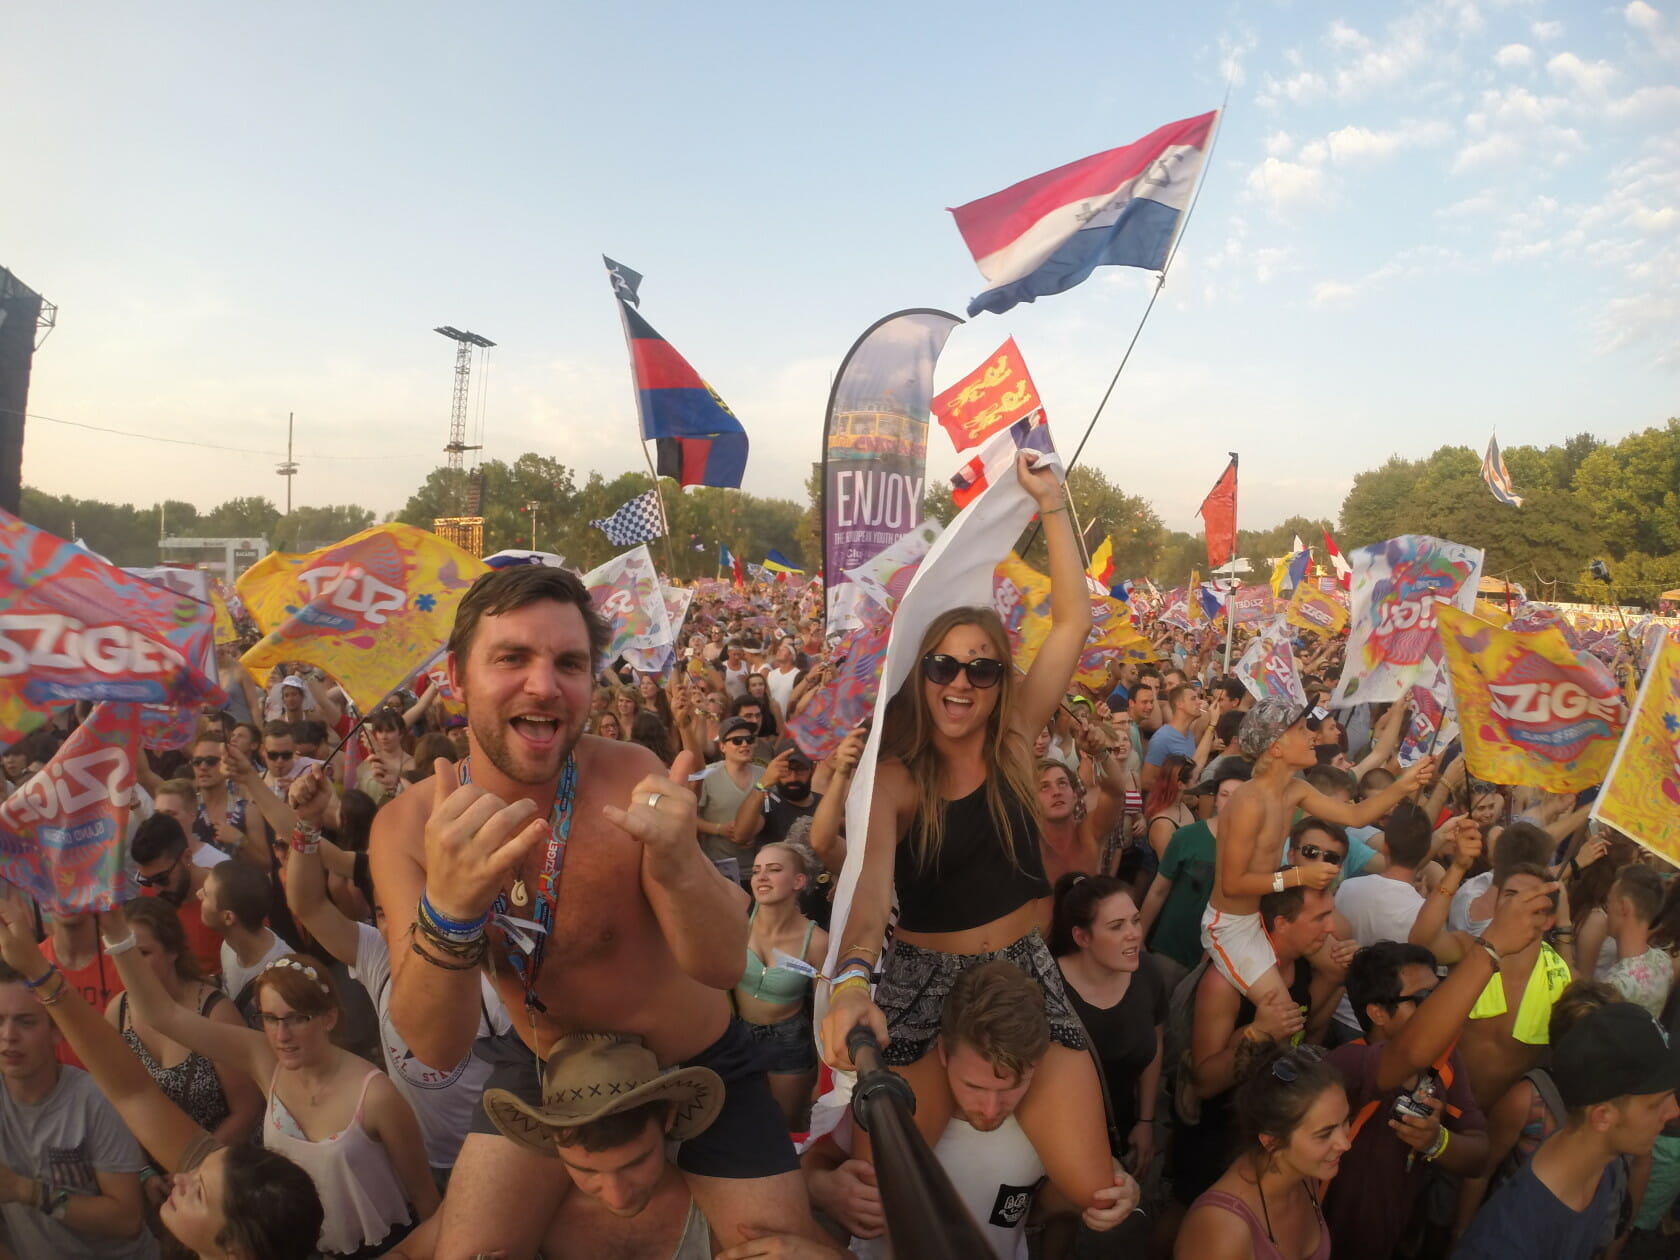 Stoke travel Sziget festival Budapest sziget festival guide going to a festival alone